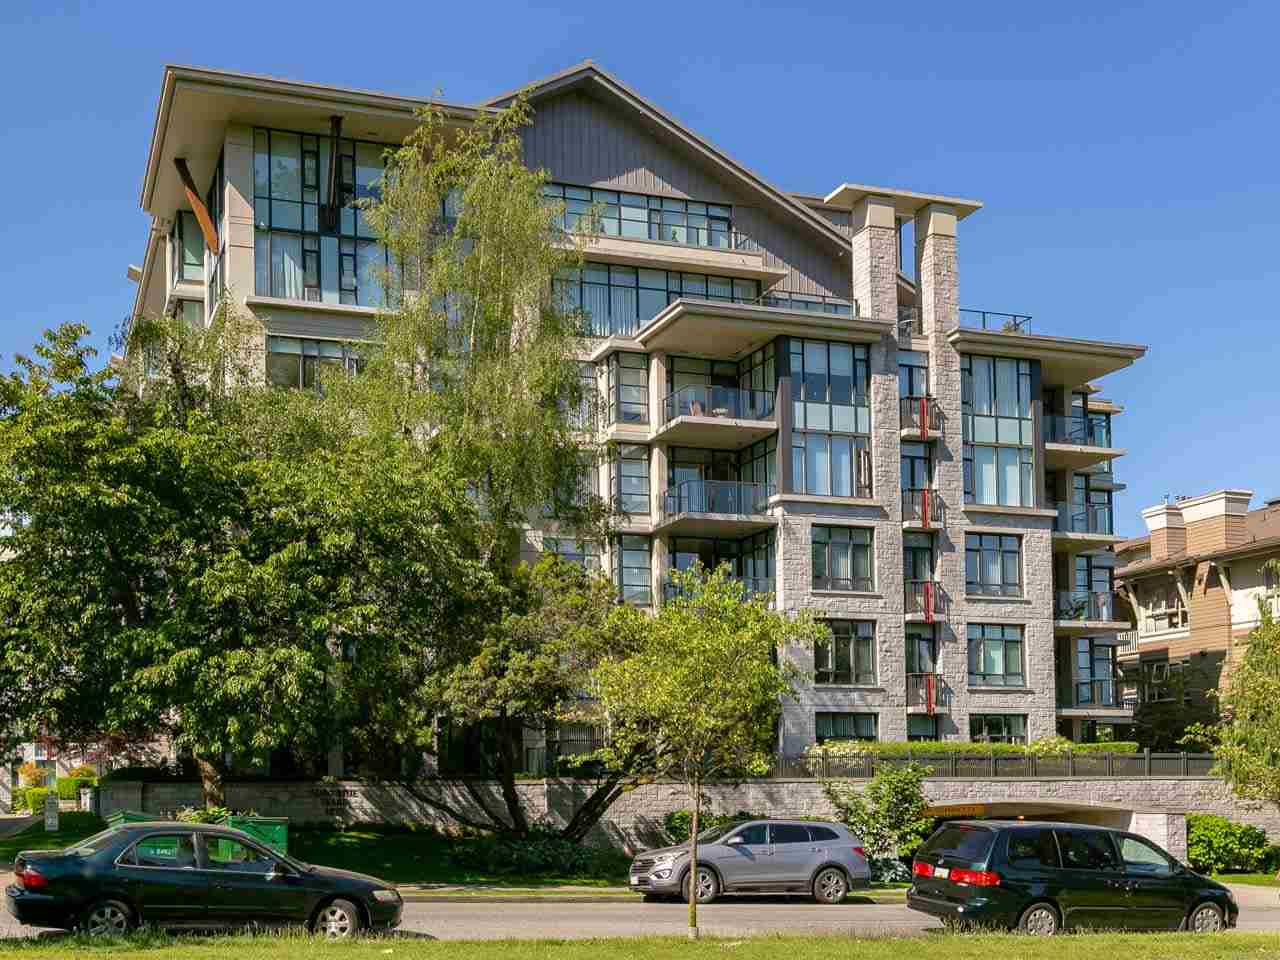 Sold: 301 - 4685 Valley Drive, Vancouver, BC